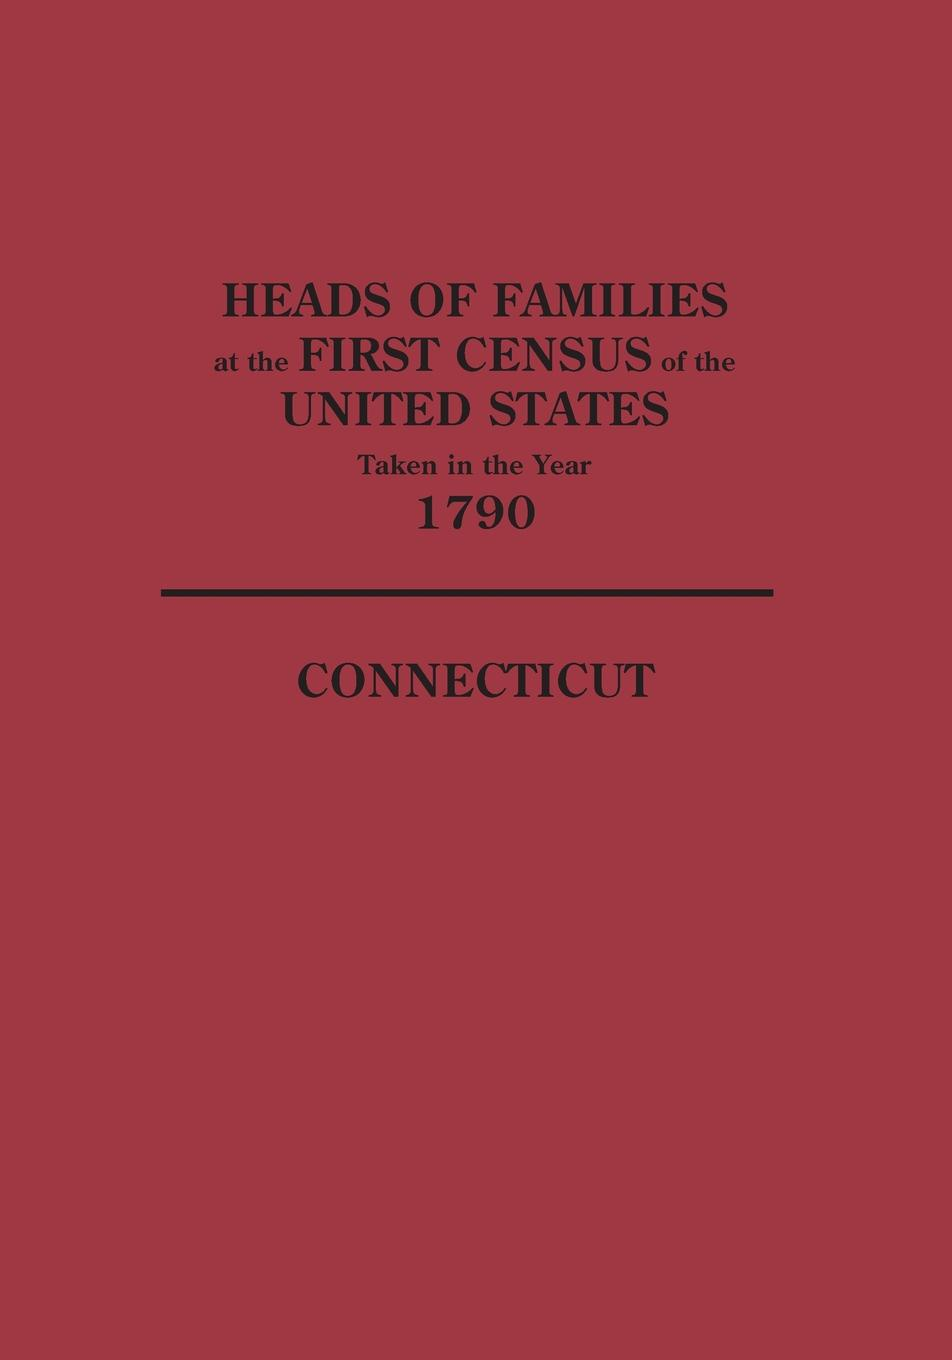 цена на U S Bureau of the Census, United States, Bureau of the Census United States Heads of Families at the First Census of the United States Taken in the Year 1790. Connecticut